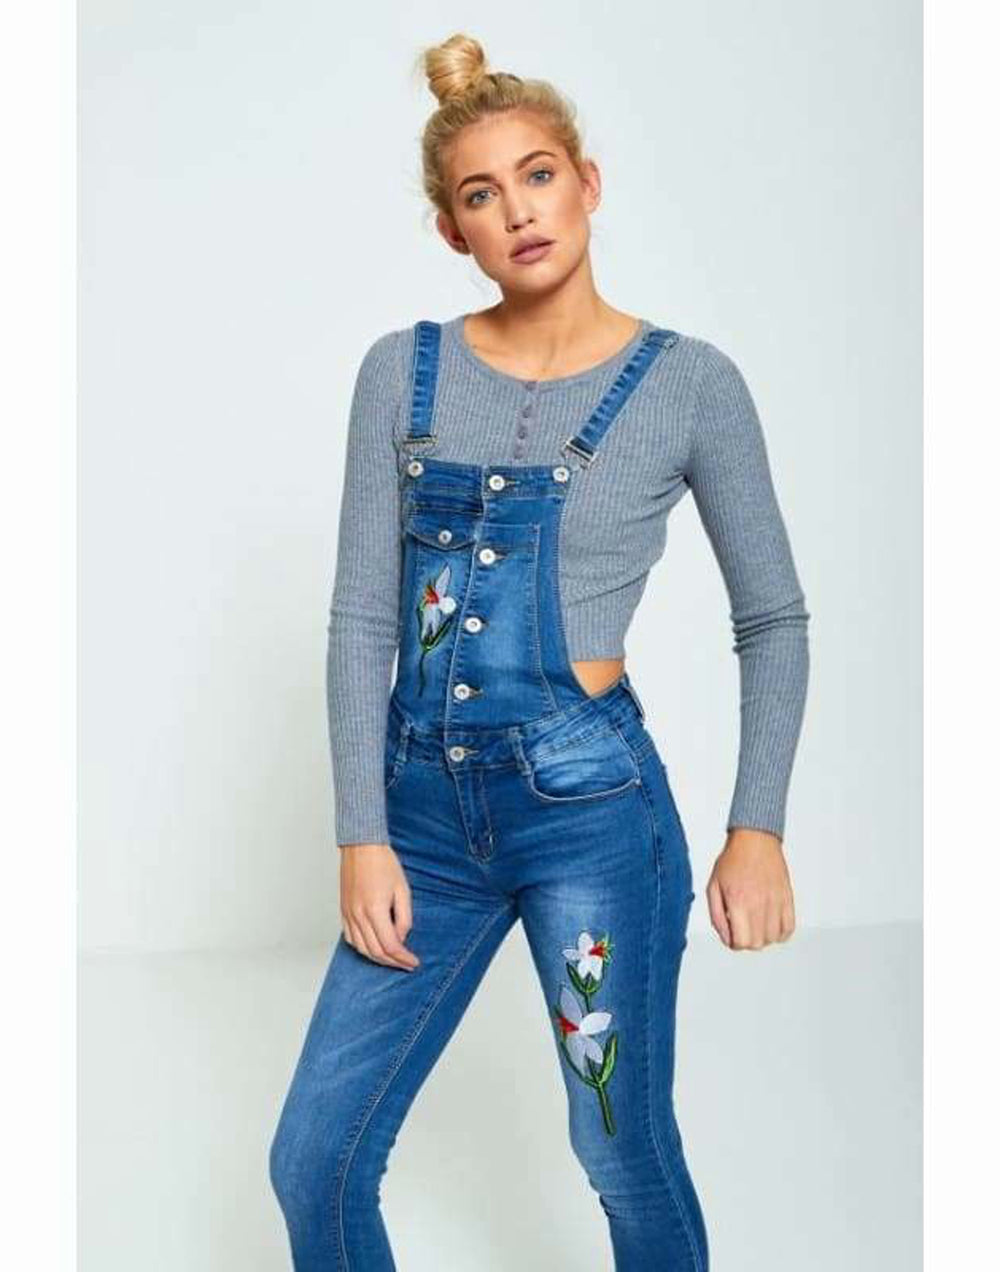 Floral Embroidered Button Up Dungarees - Jumpsuits & Playsuits 5165, blue dungarees, by sawn, by swan floral embroidered button up